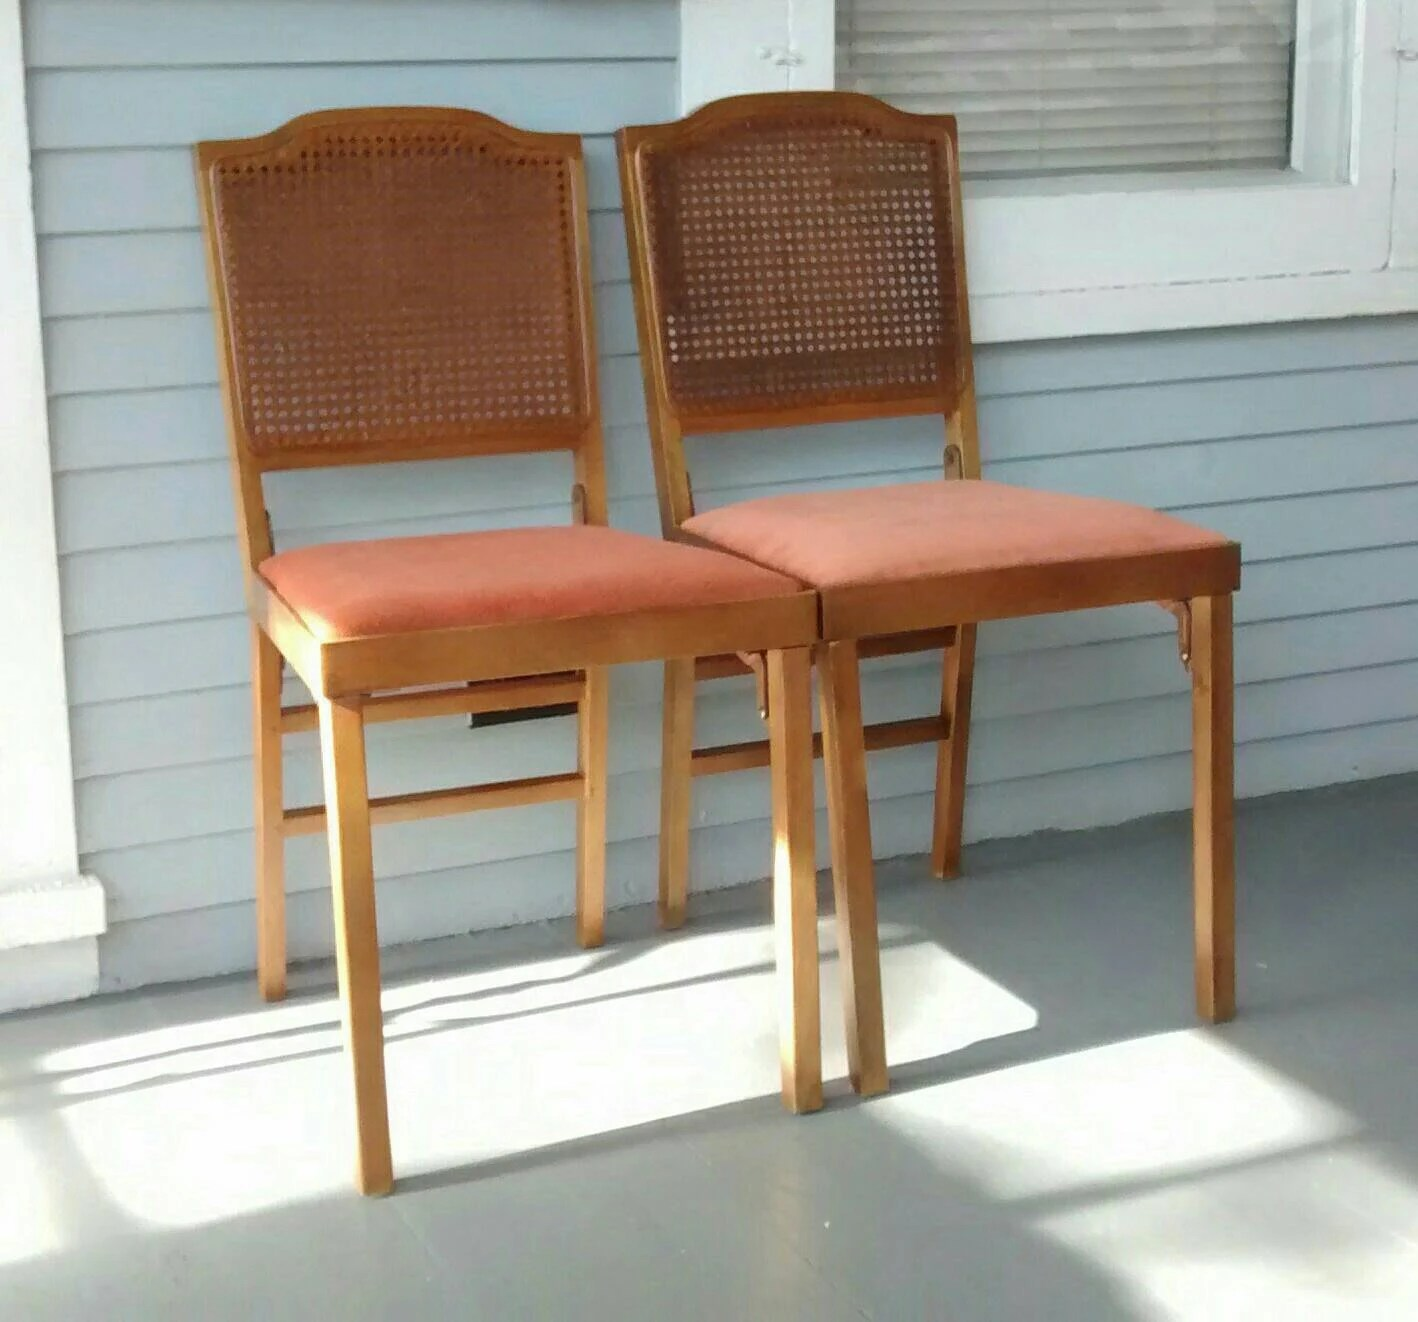 Upholstered Folding Chairs Folding Chairs Dining Chairs Rattan Upholstered